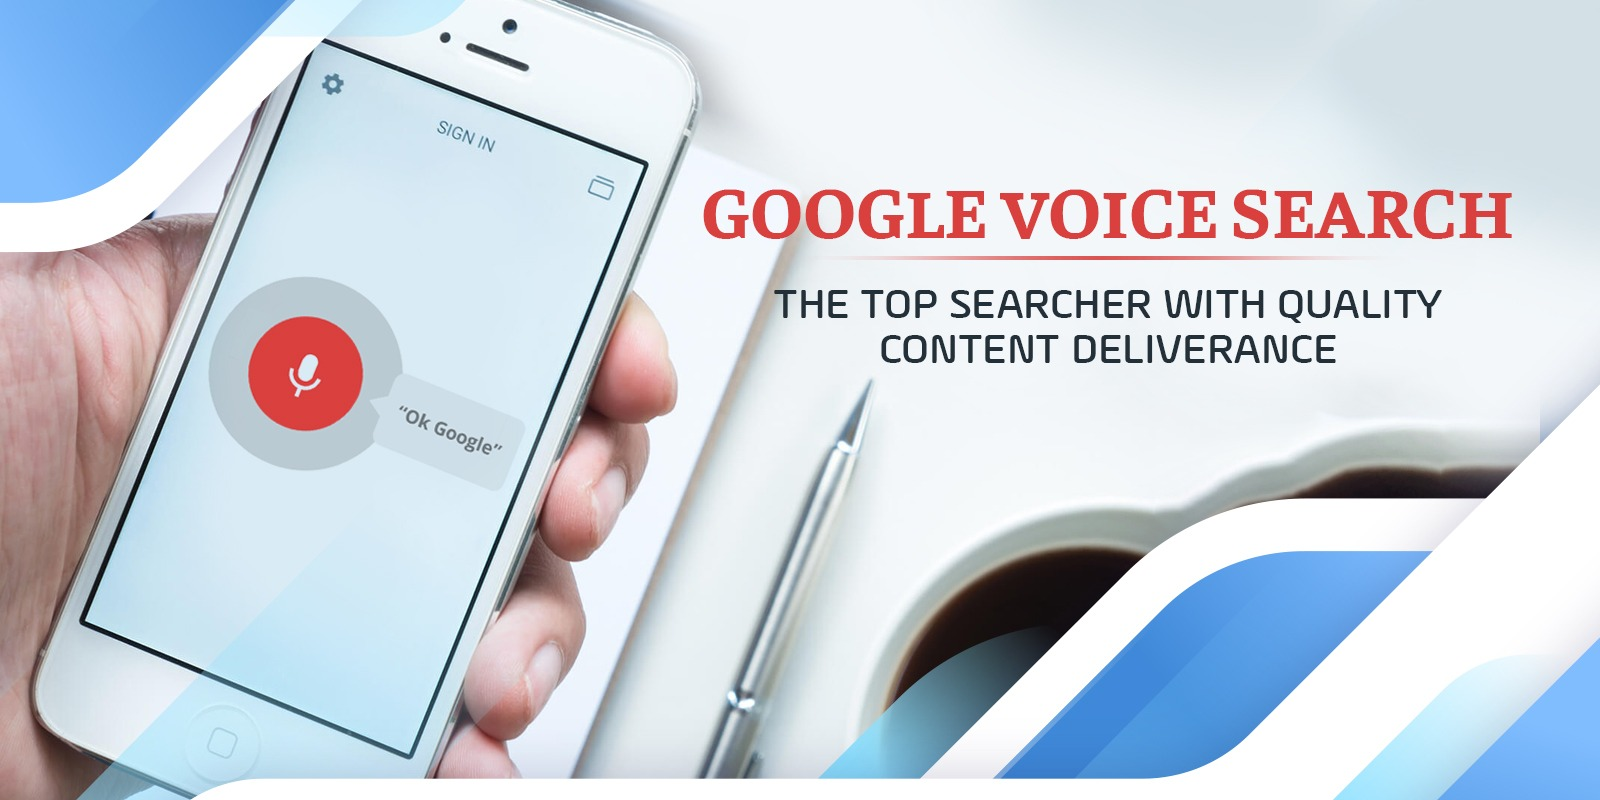 GOOGLE VOICE SEARCH- The Top Searcher with Quality Content Deliverance